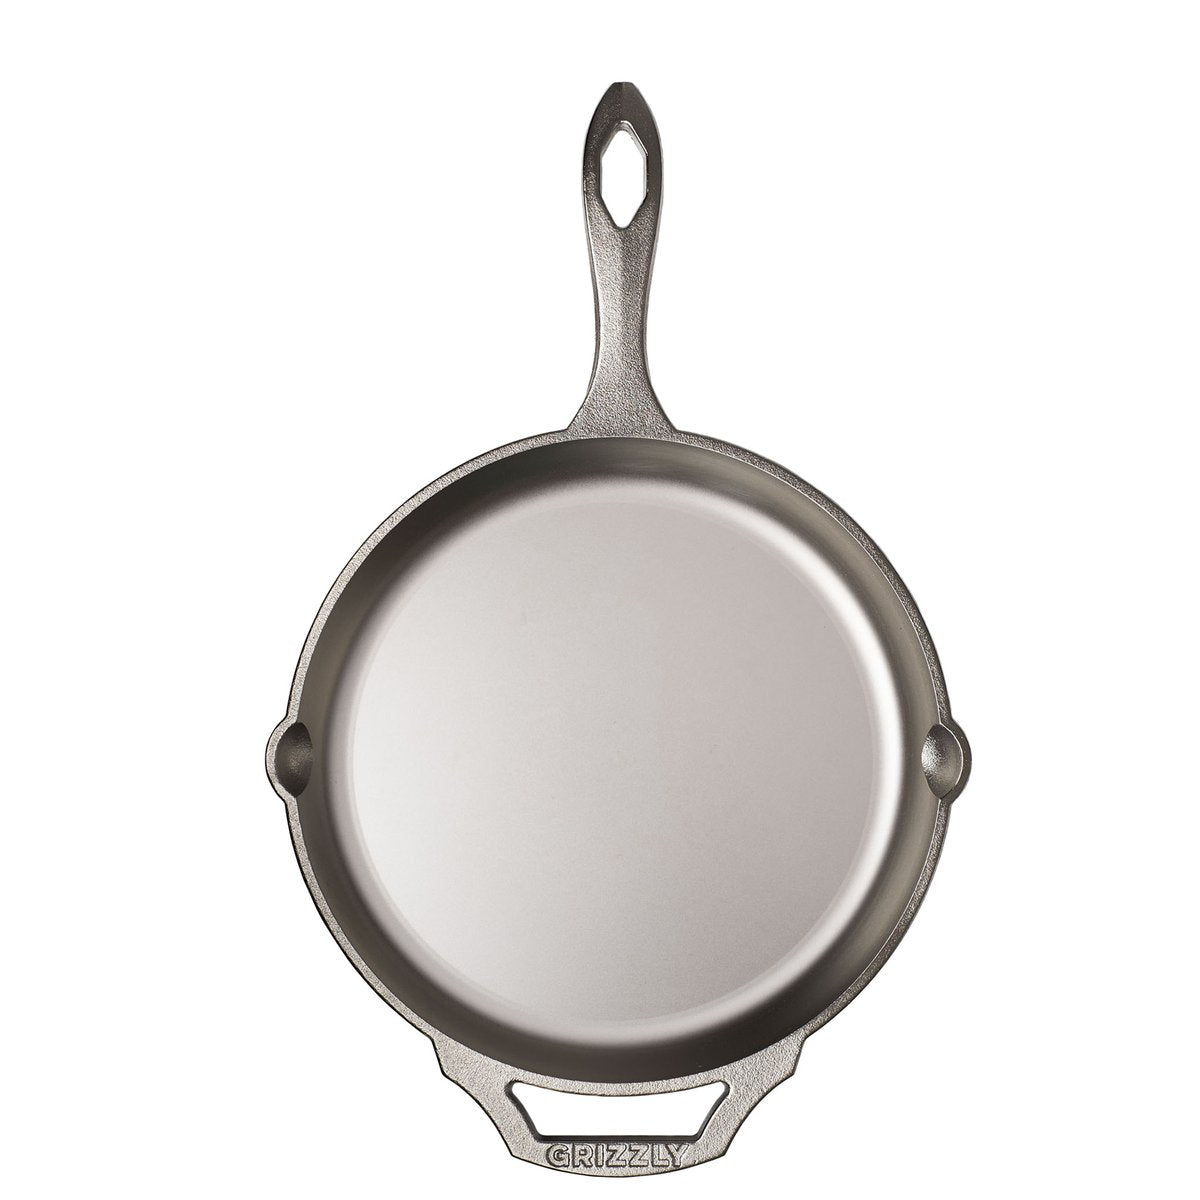 "GRIZZLY 12"" Cast Iron Skillet"